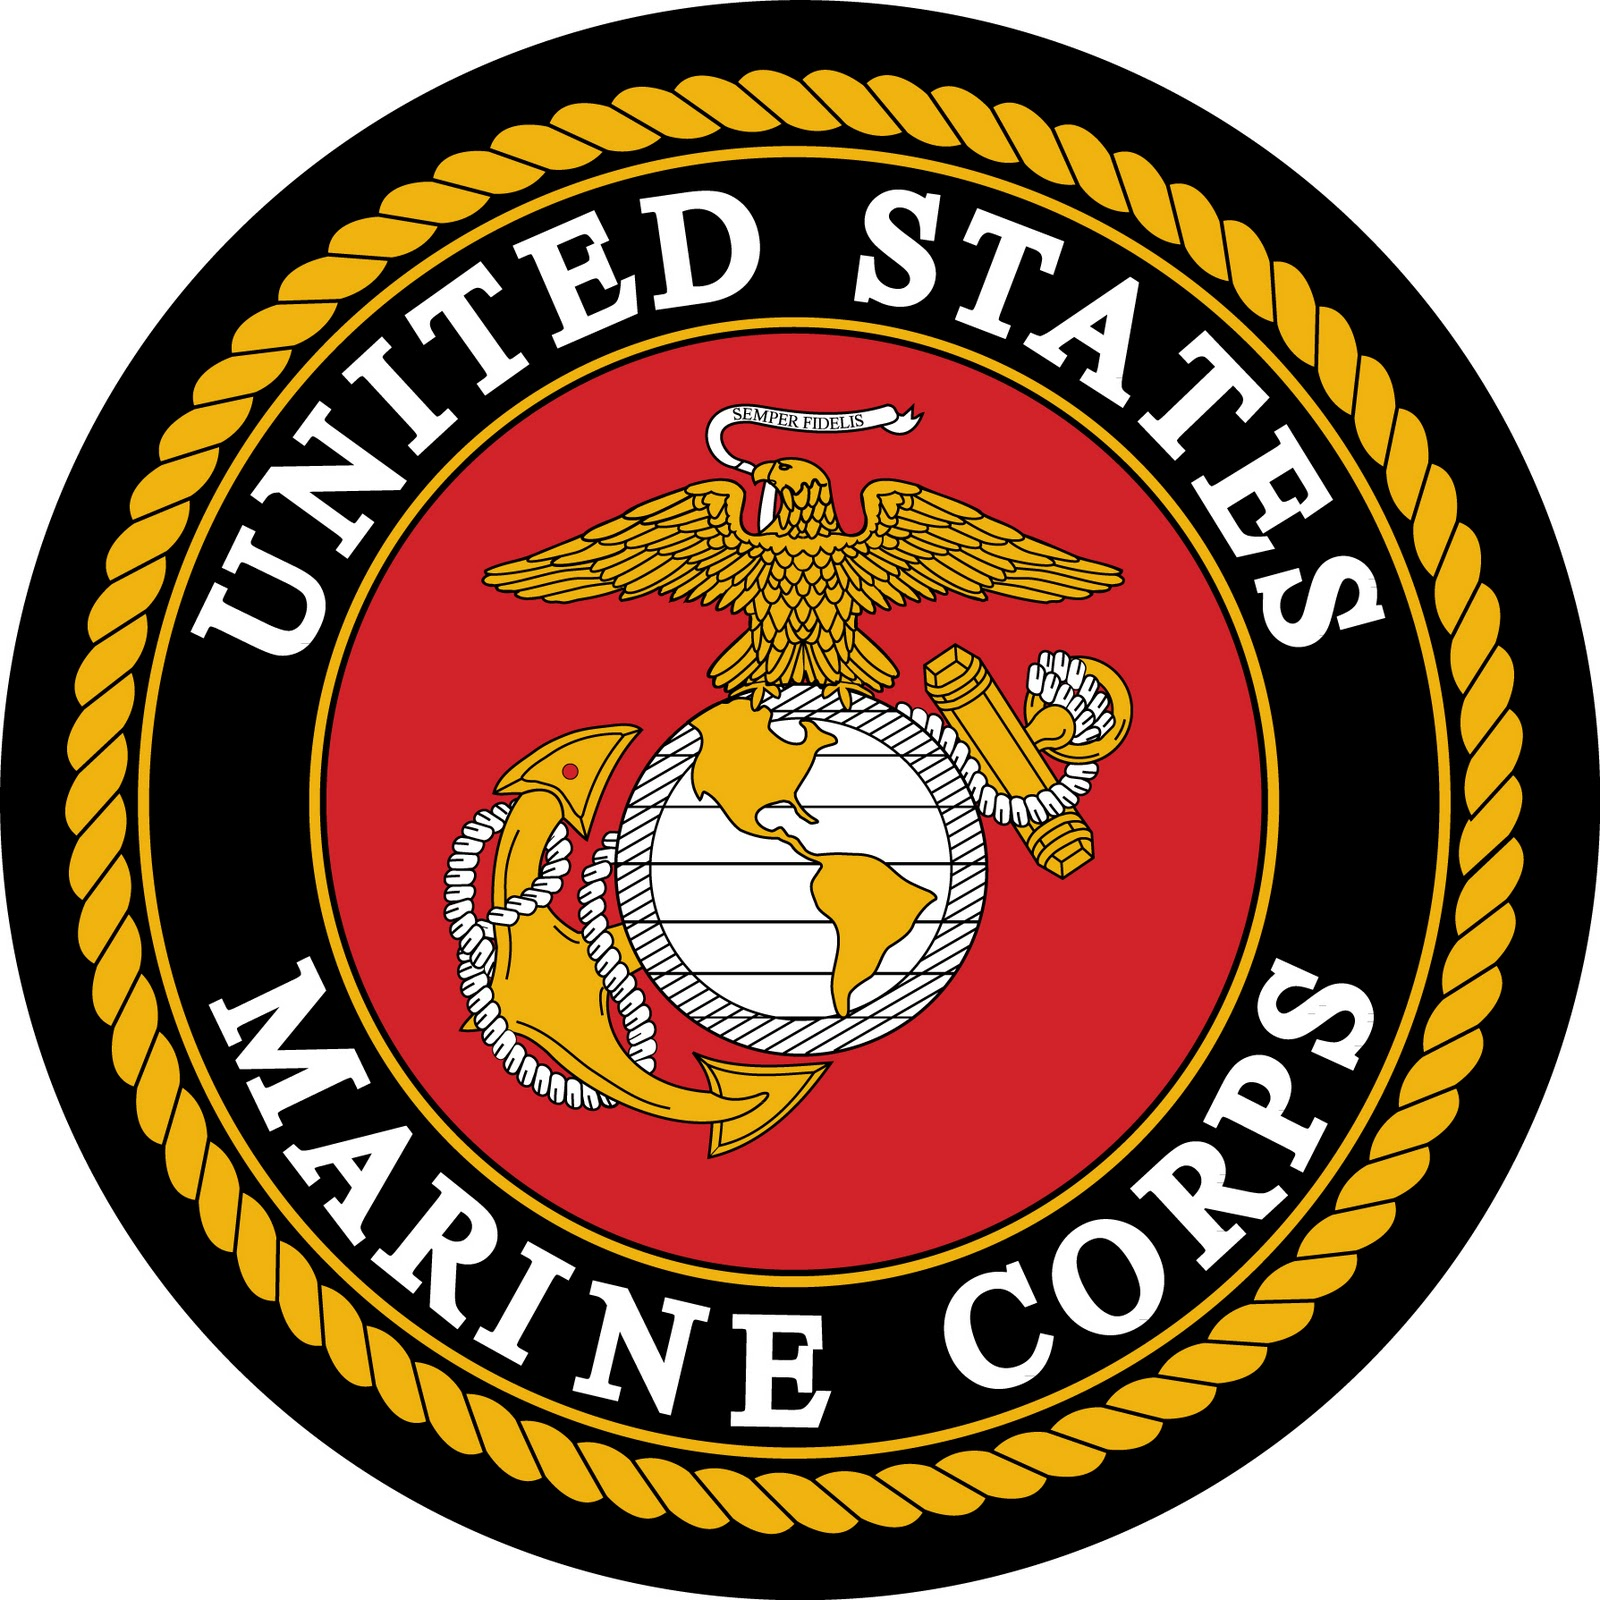 united states marine corps and marine United states marine corps marine corps installations east-marine corps base psc box 20005 camp lejeune, north carolina 28542-0005 title: united states marine corps author: gysgt parra-milks last modified by: mcmann msgt timothy c created.